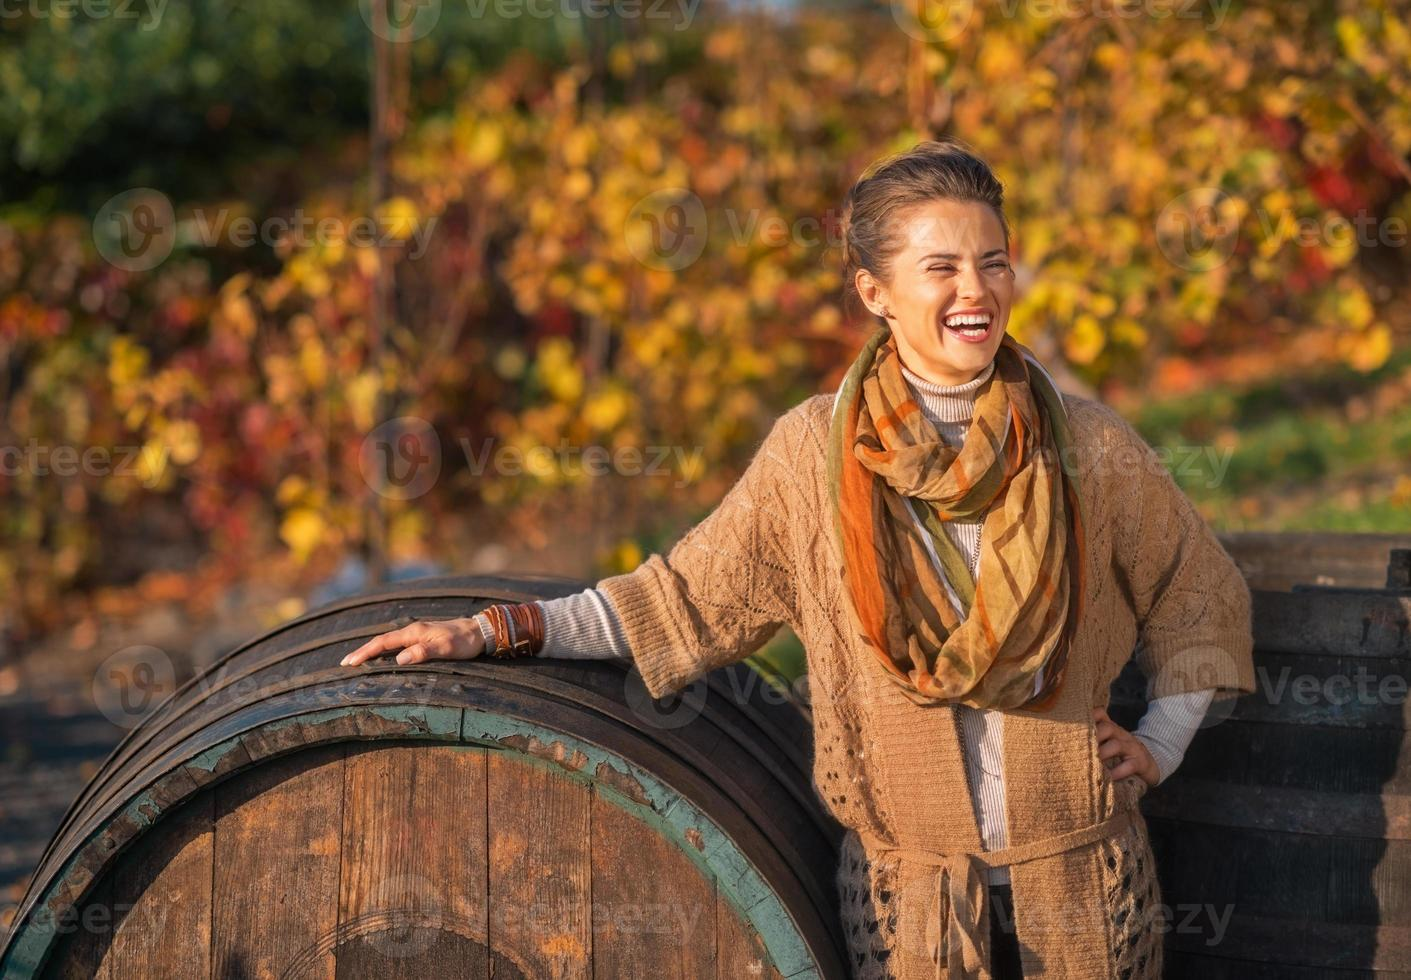 Portrait of smiling woman near wooden barrel in autumn outdoors photo